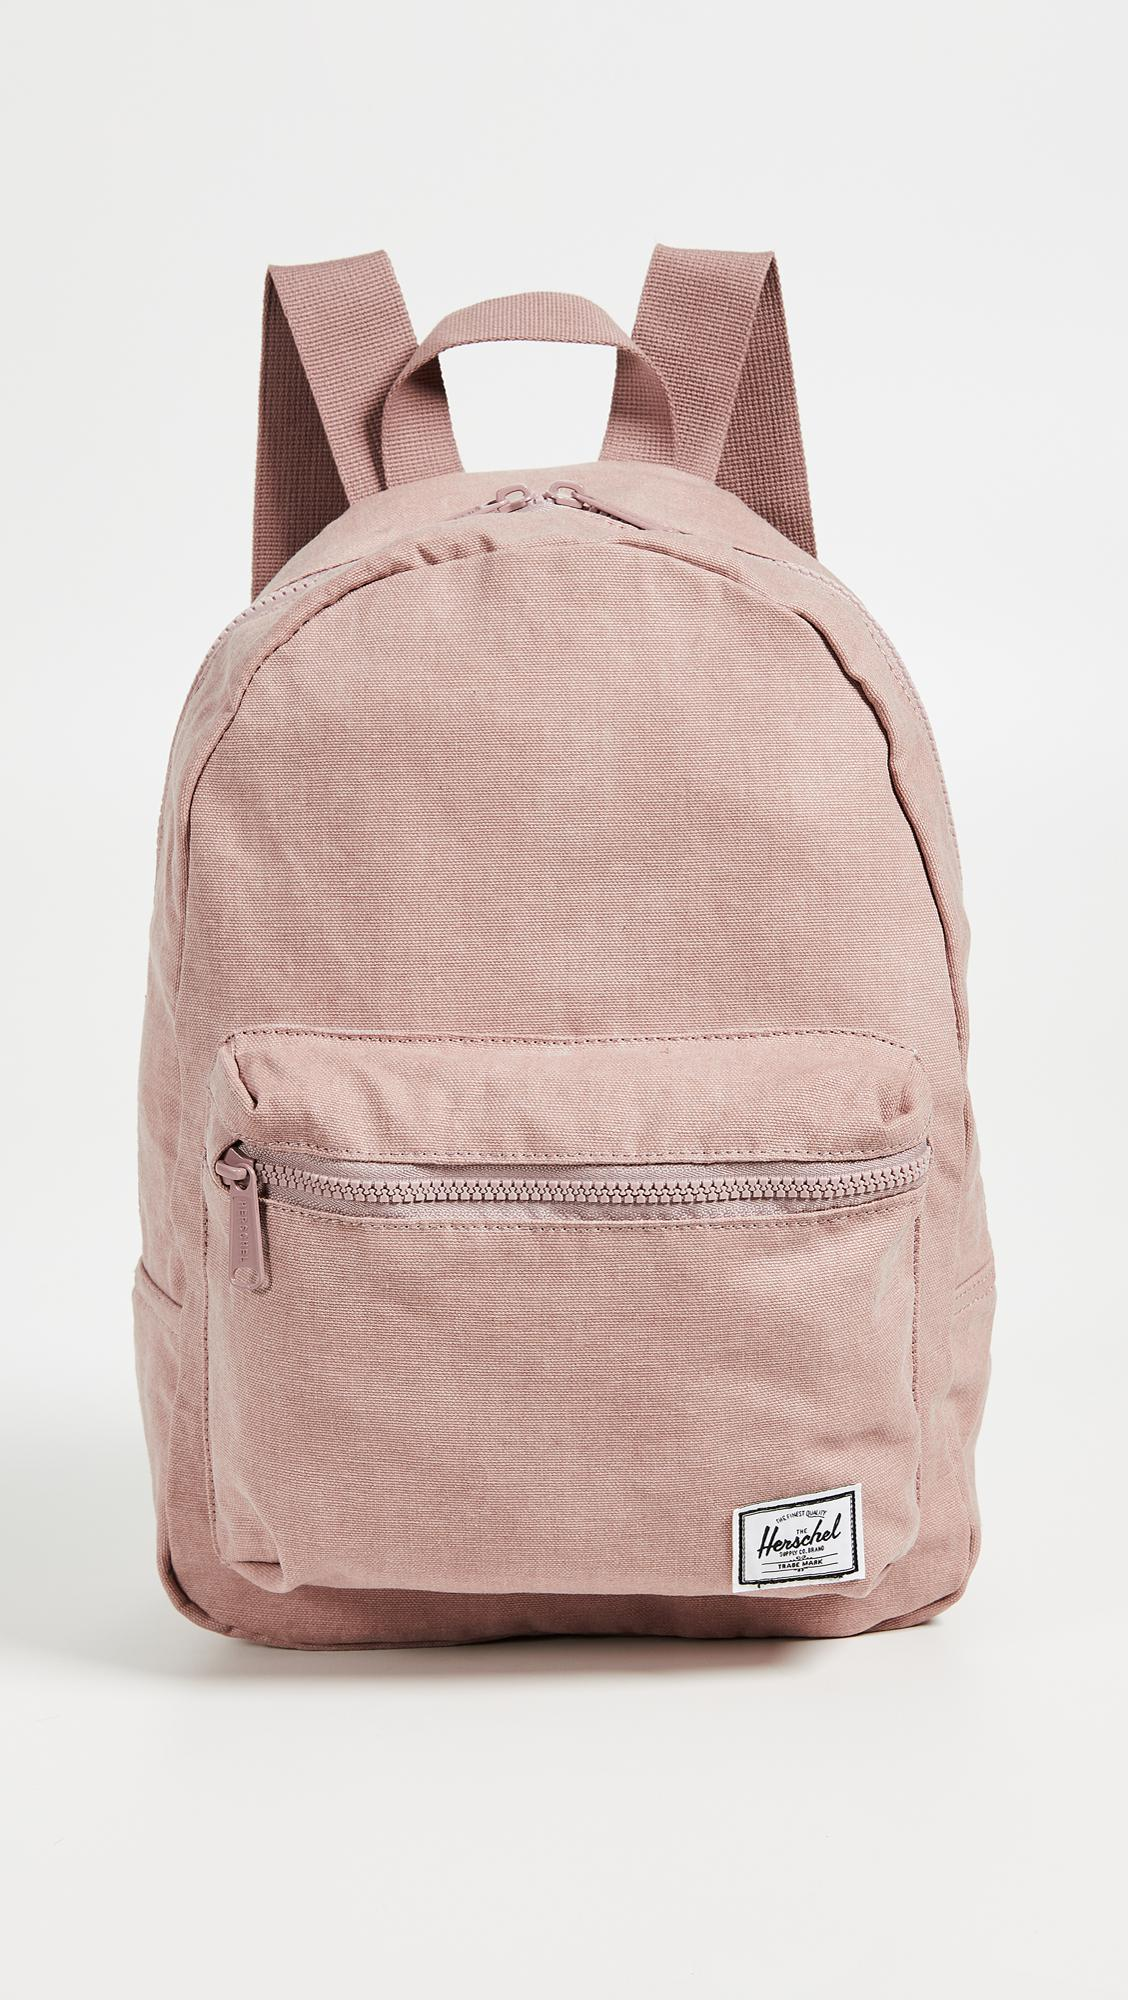 787652526eb8 Herschel Supply Co. Cotton Casual Grove X-small Backpack in Pink - Lyst